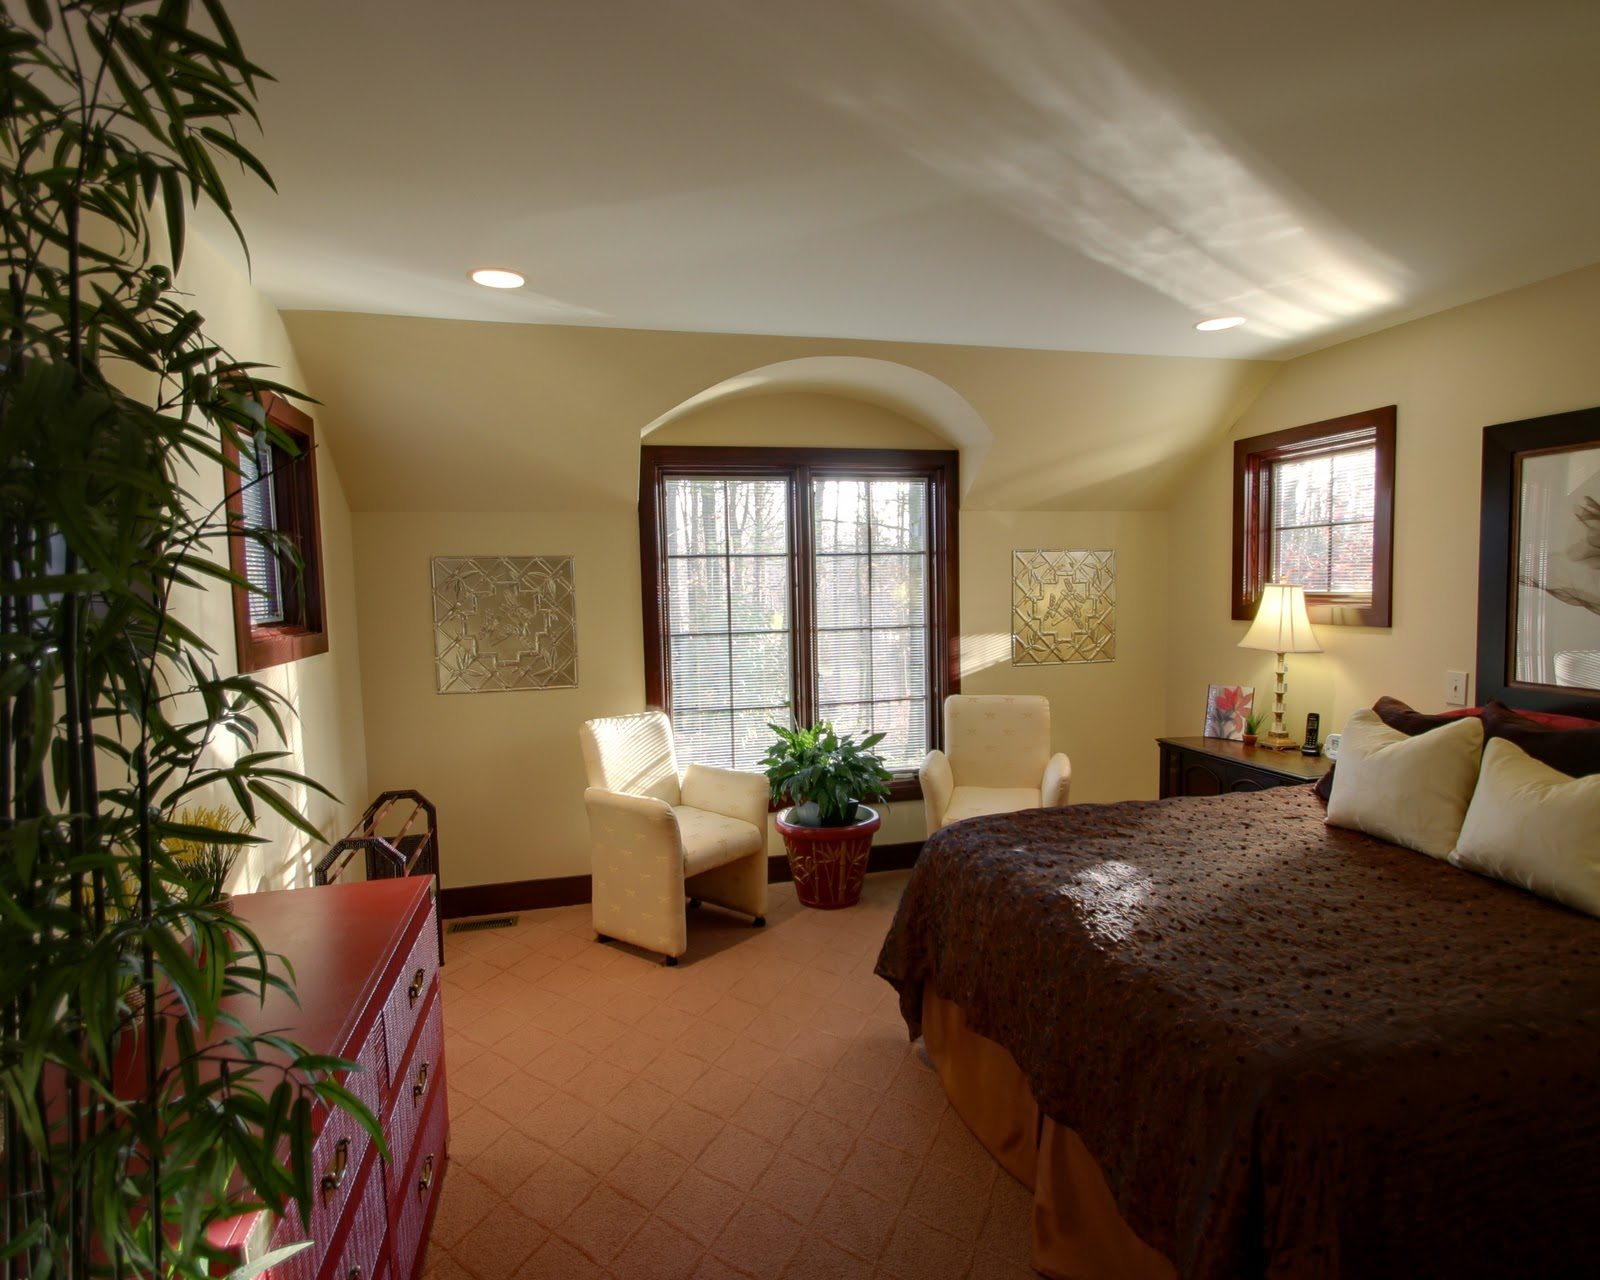 Design Ideas for a 3 Bedroom House: Bedroom Decorating Ideas